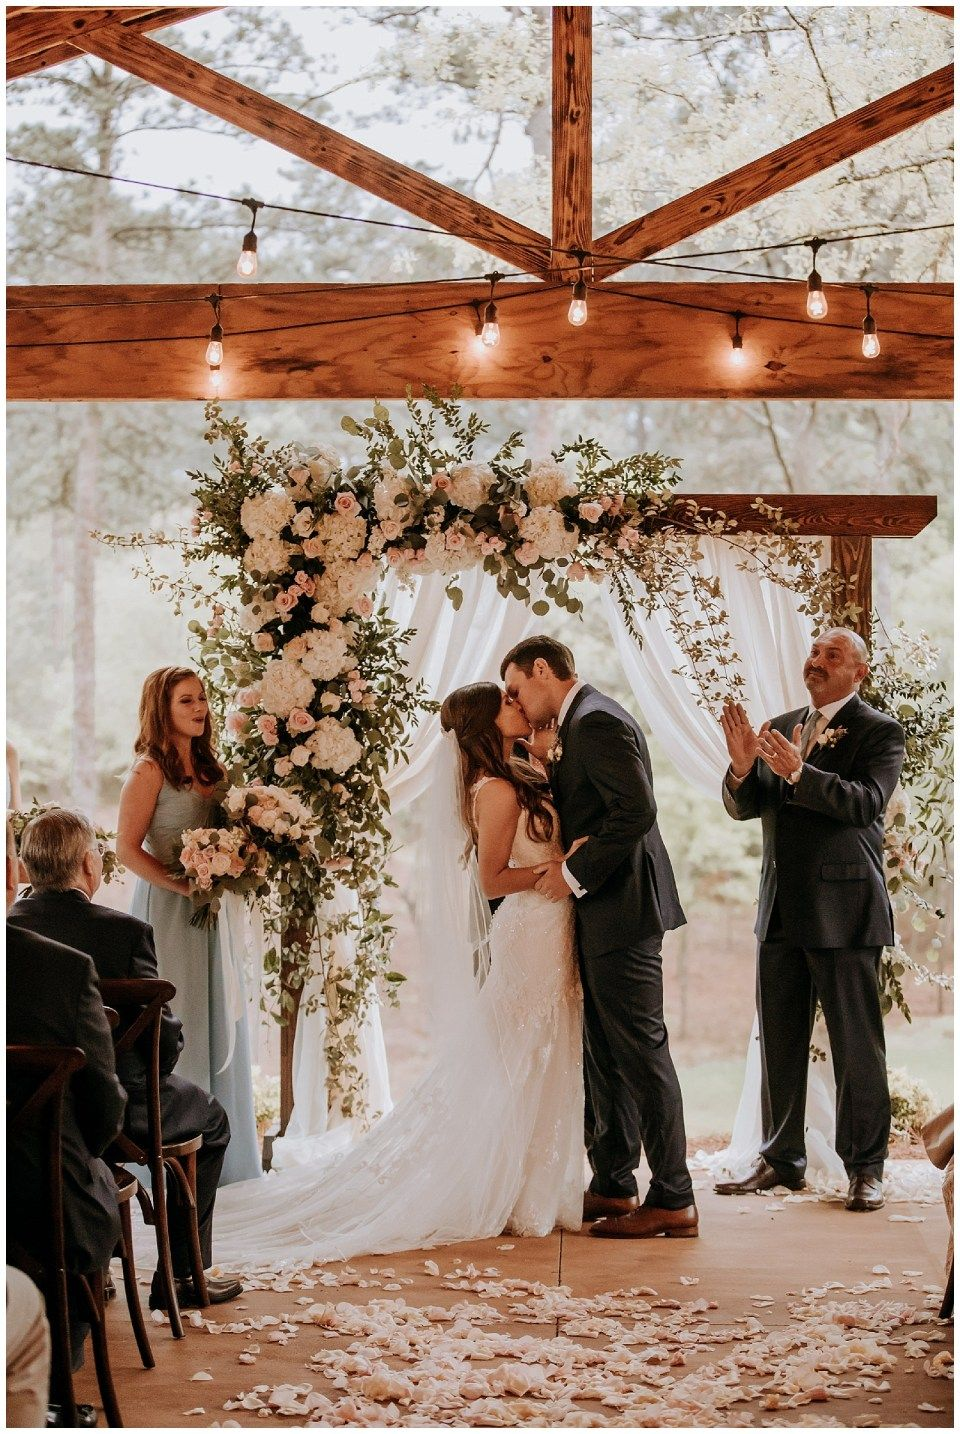 Dogwood Venue Wedding Hattiesburg Mississippi An Outdoor Wedding dogwood venue wedding hattiesburg mississippi an outdoor